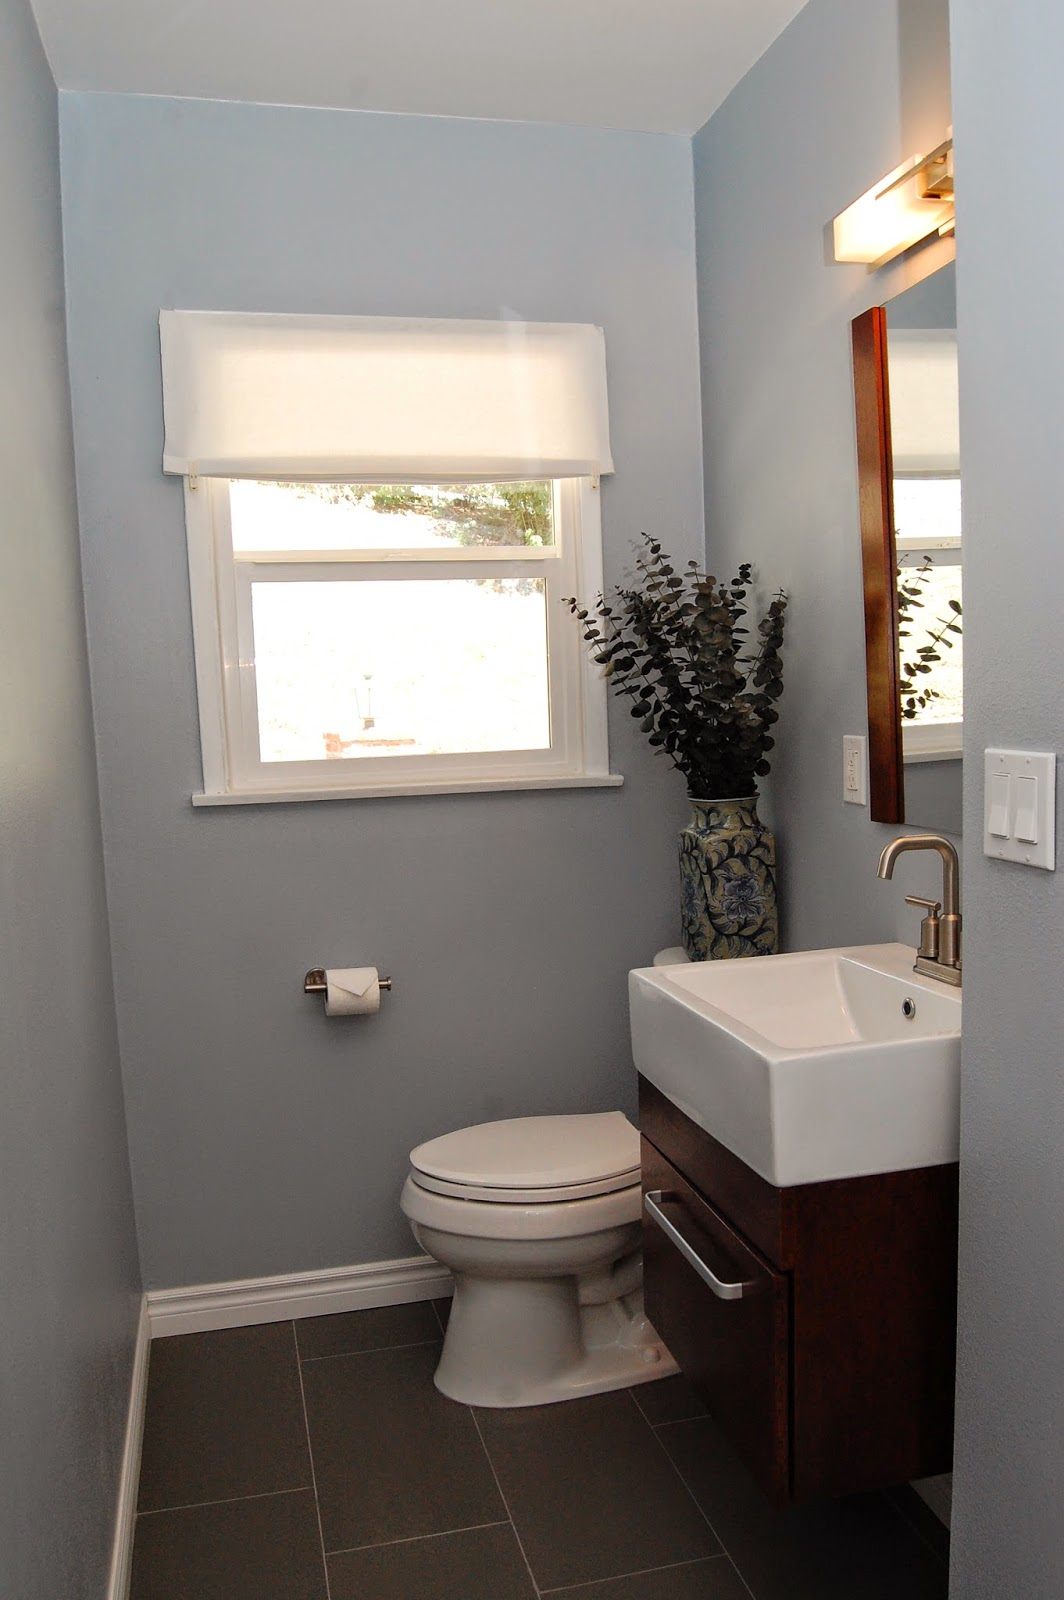 CAD INTERIORS guest bathroom renovation modern transitional